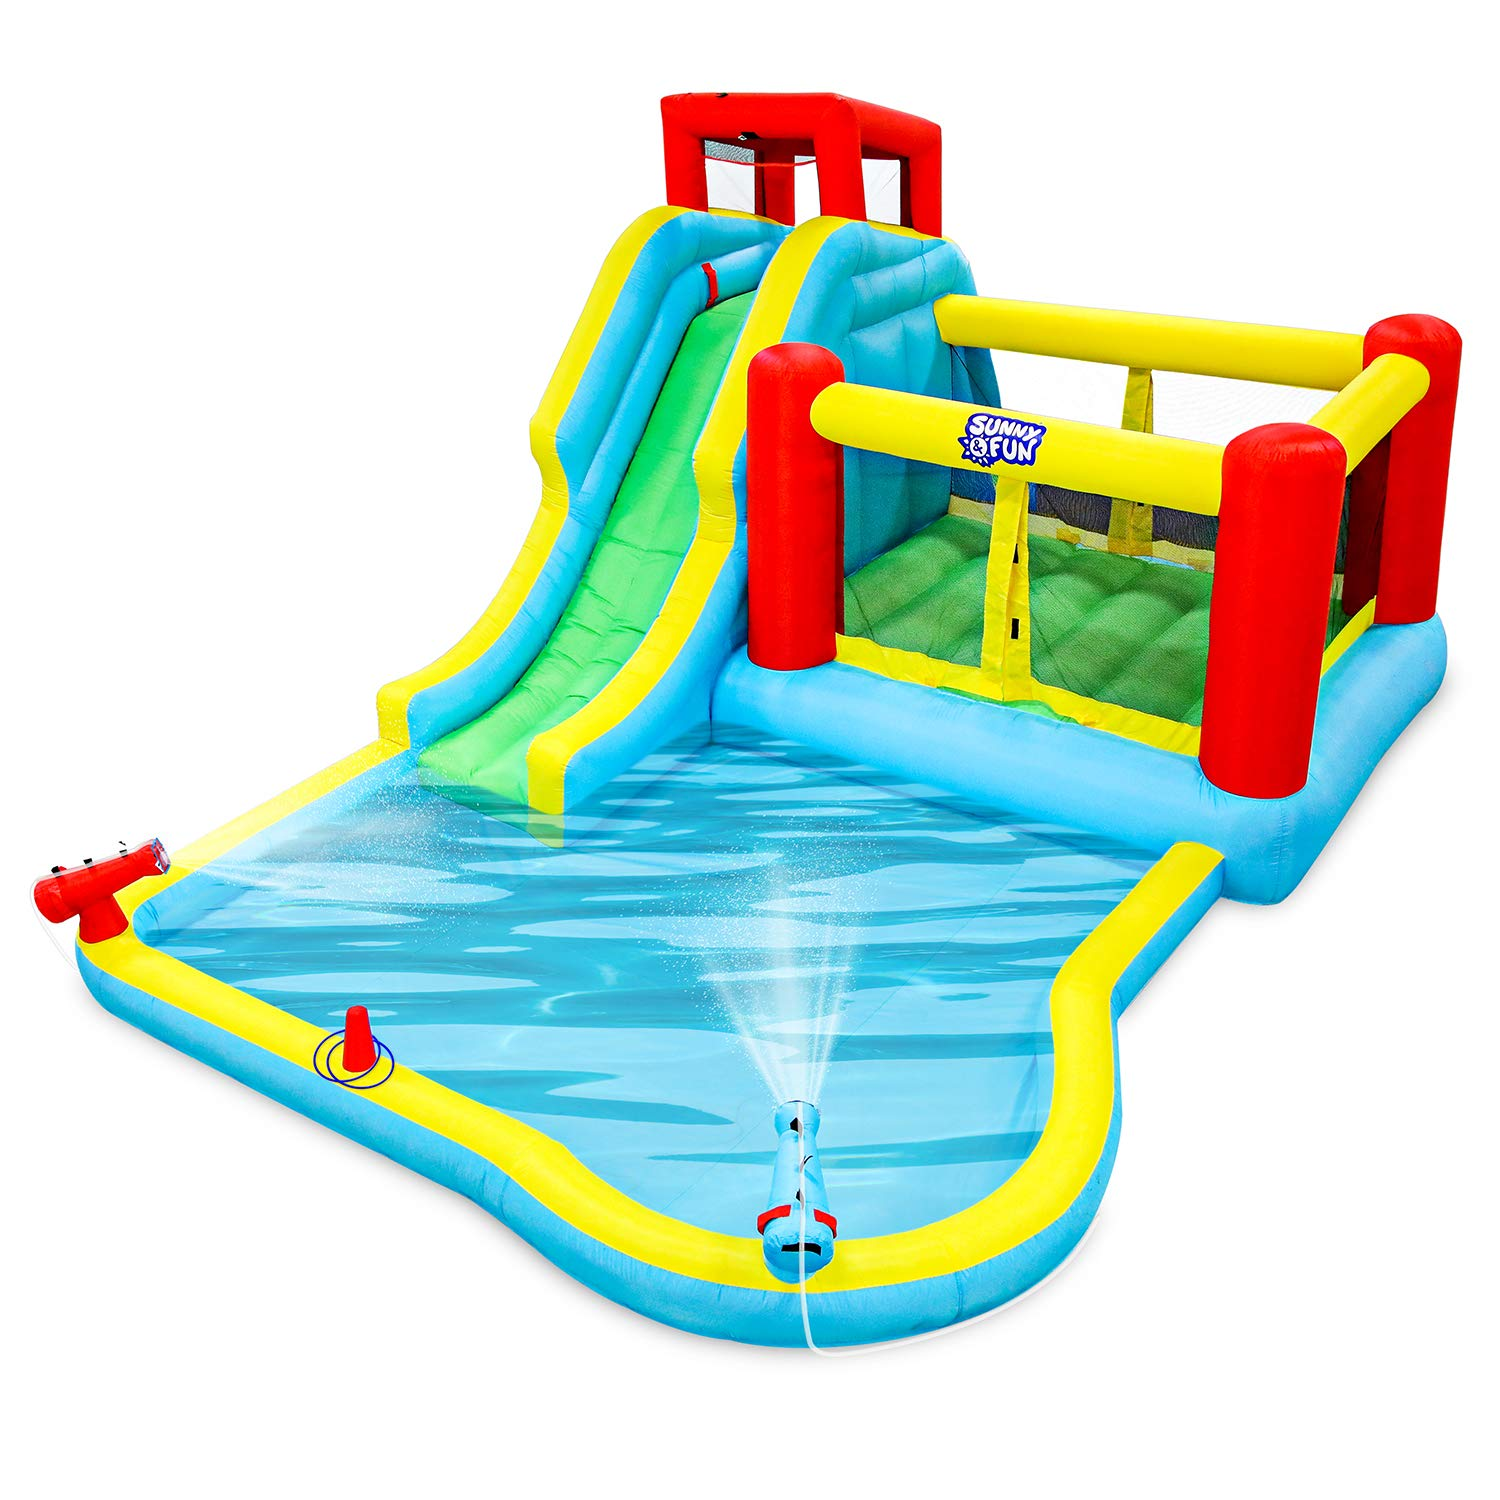 Deluxe Inflatable Water Slide Park - Heavy-Duty Nylon Bounce House for Outdoor Fun - Climbing Wall, Slide, Bouncer & Splash Pool - Easy to Set Up & Inflate with Included Air Pump & Carrying Case by Sunny & Fun